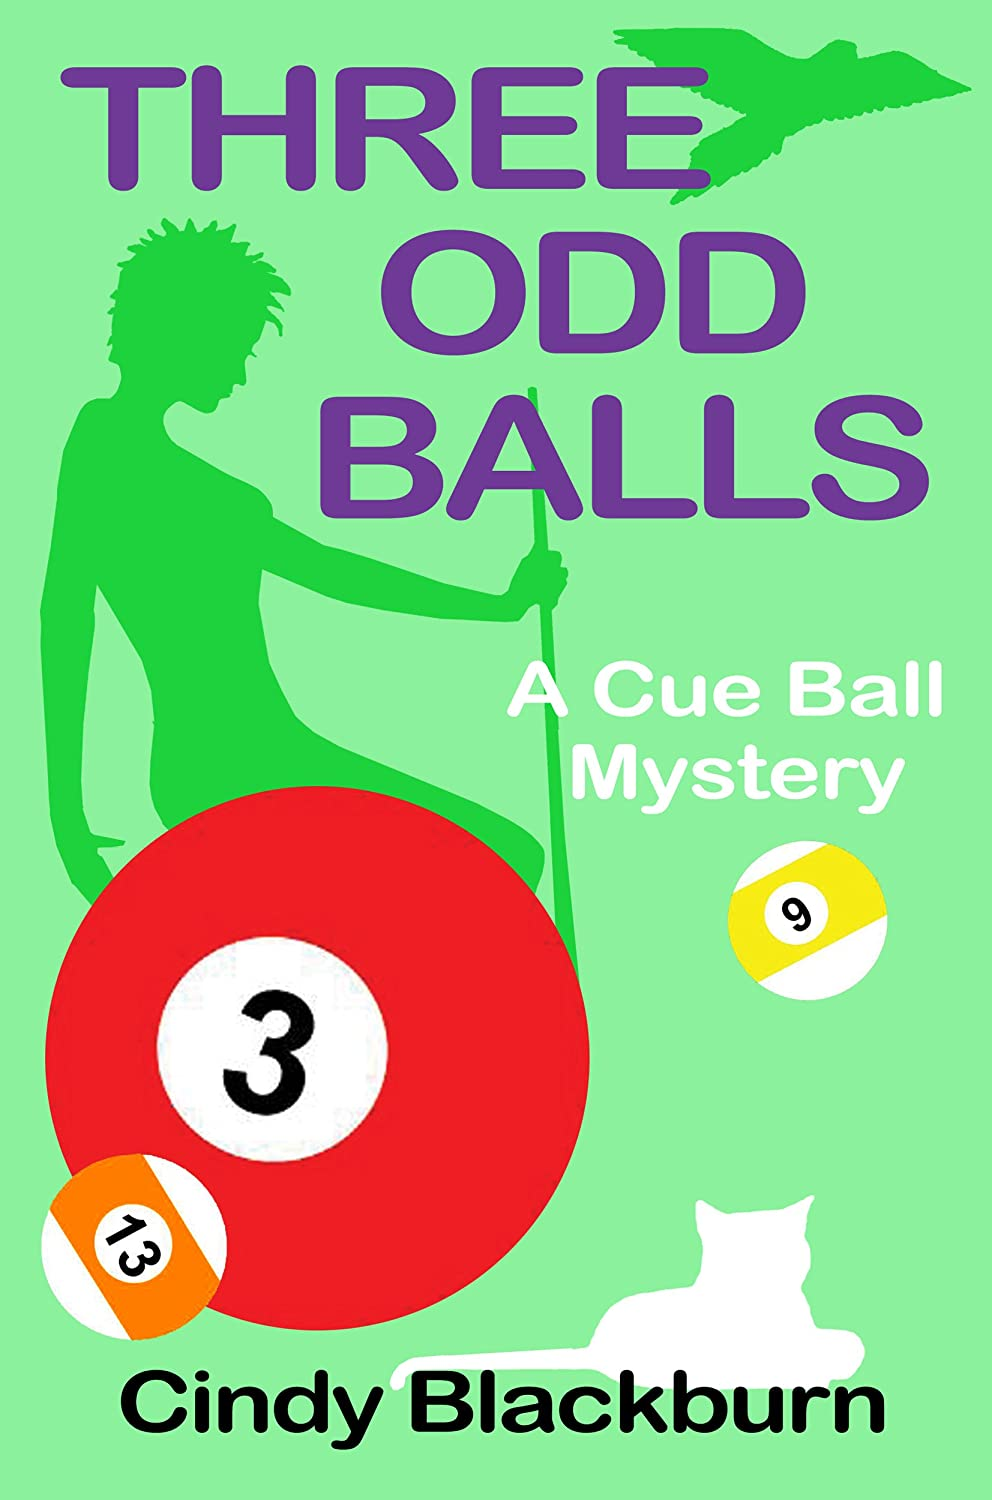 A Cue Ball Mystery, Book 3 [Unabridged] - Cindy Blackburn